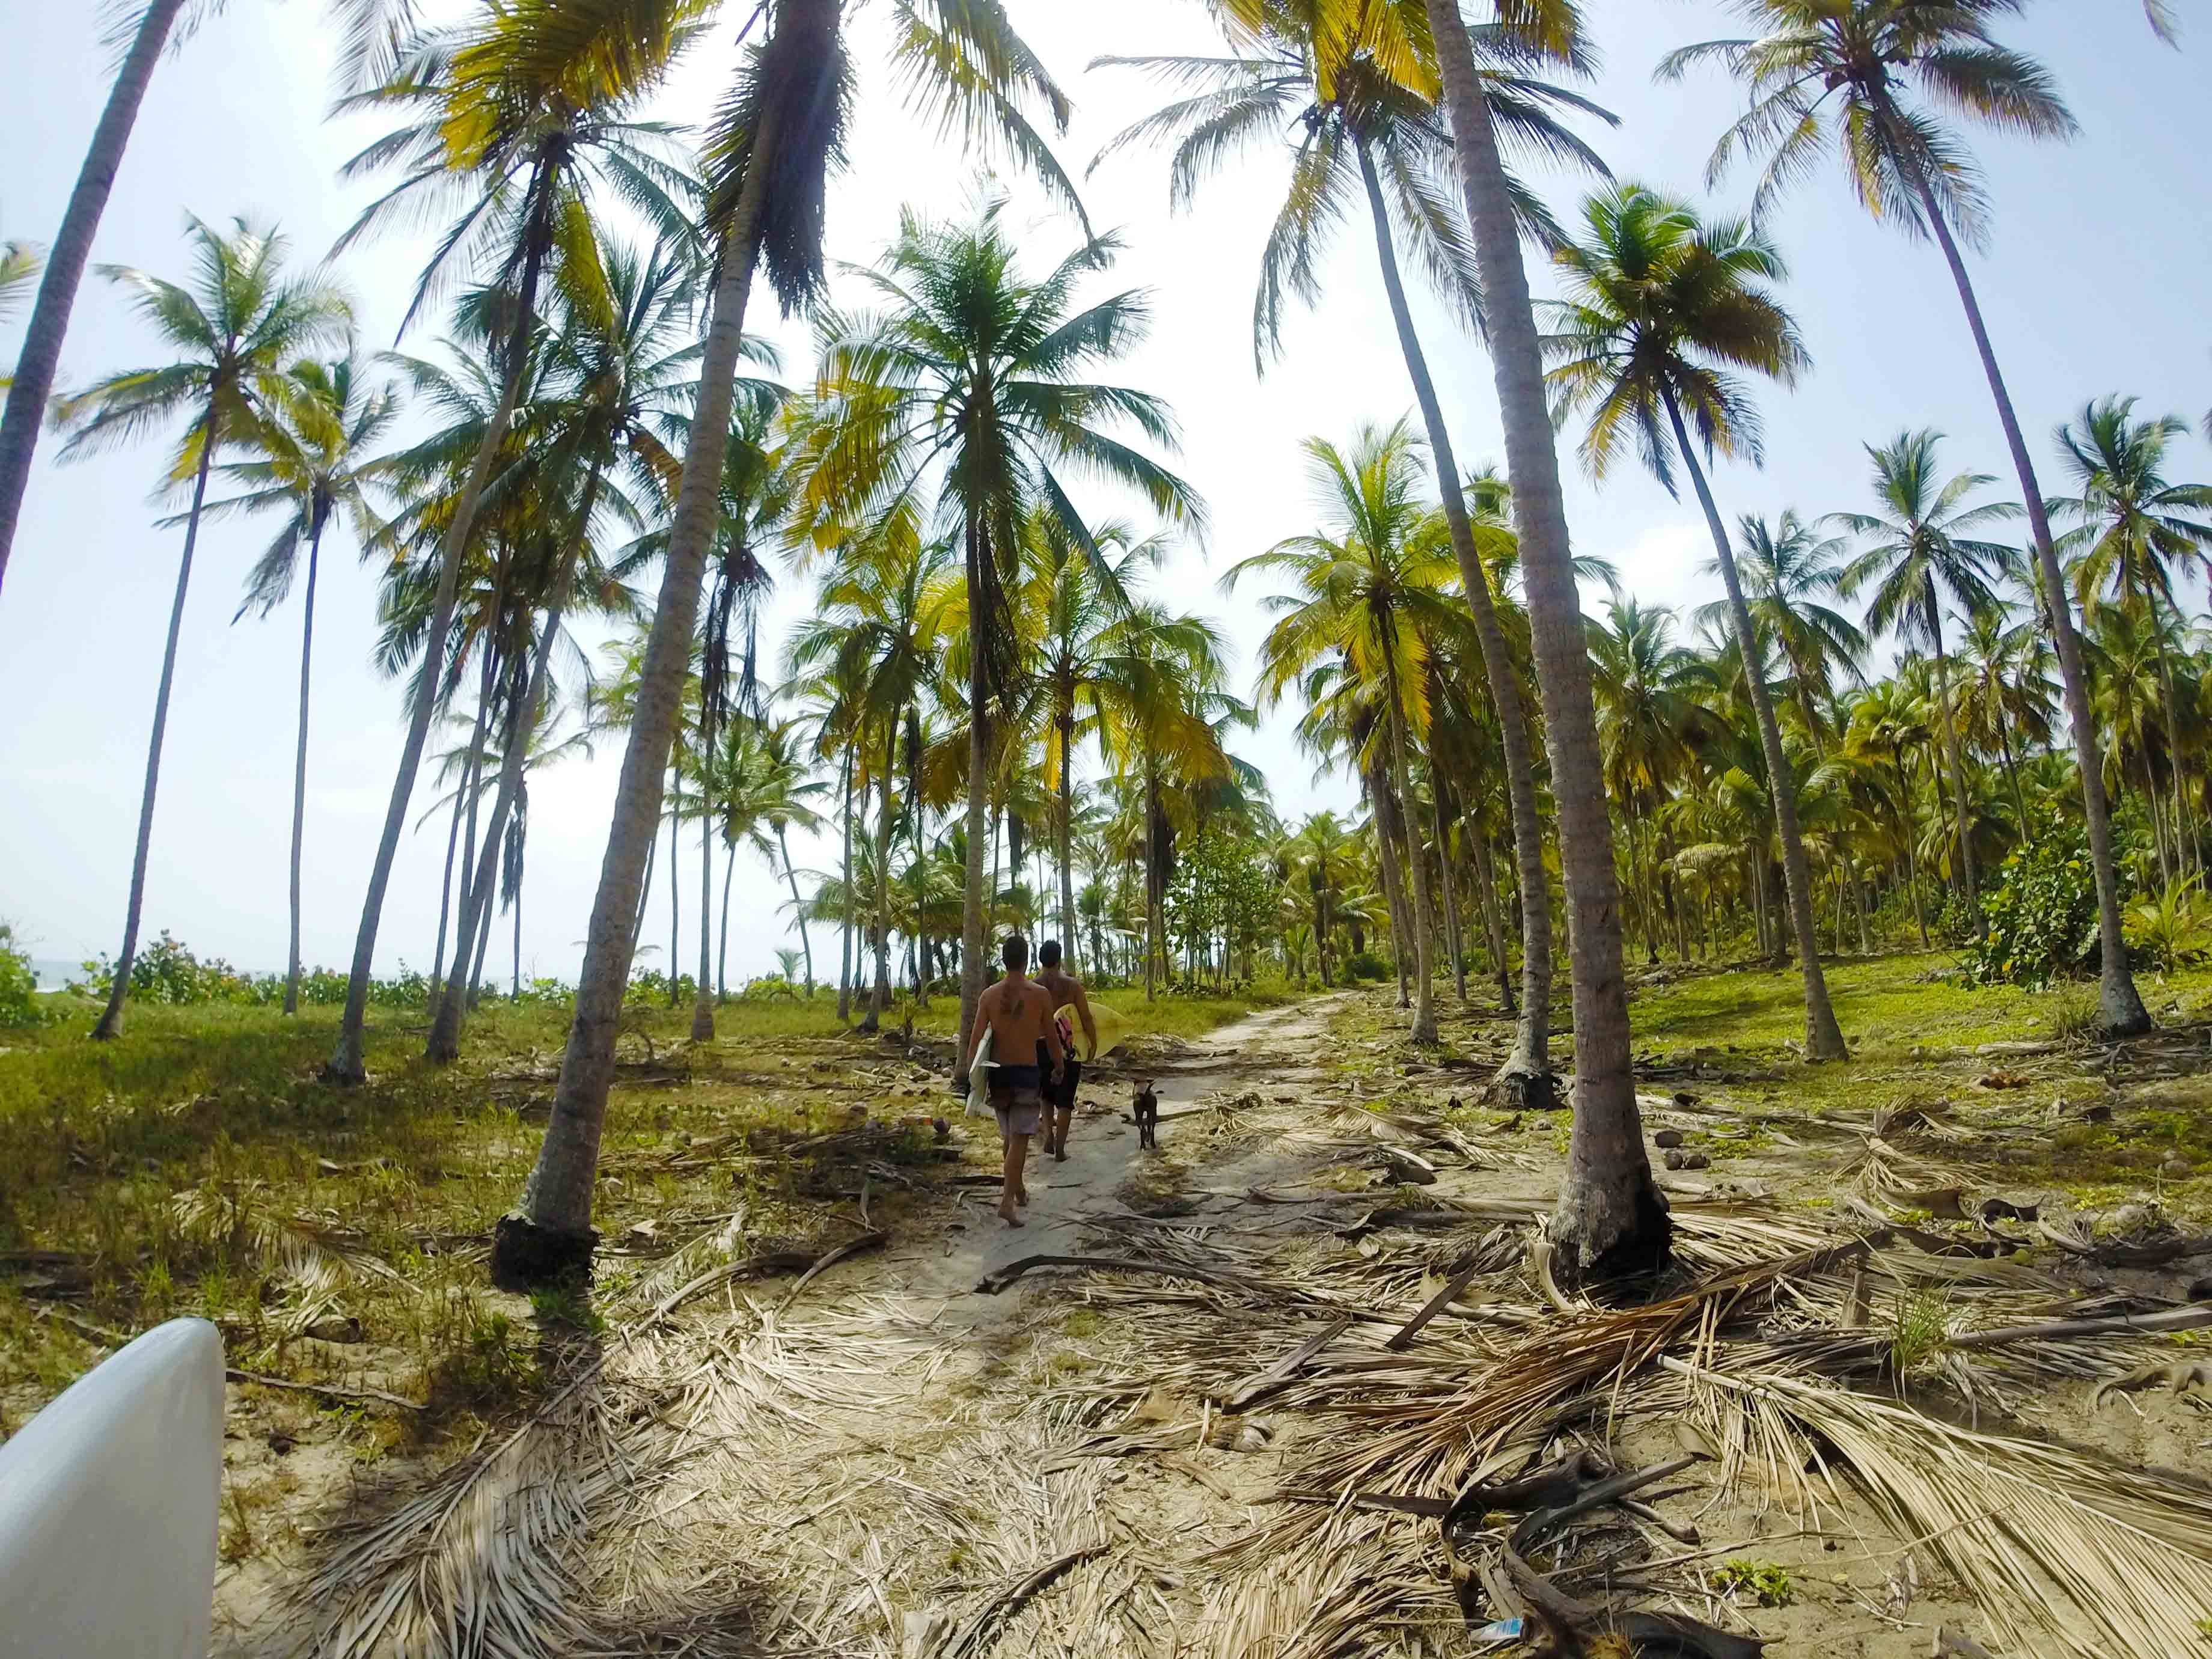 coconut farm walking for surfing at costeno beach